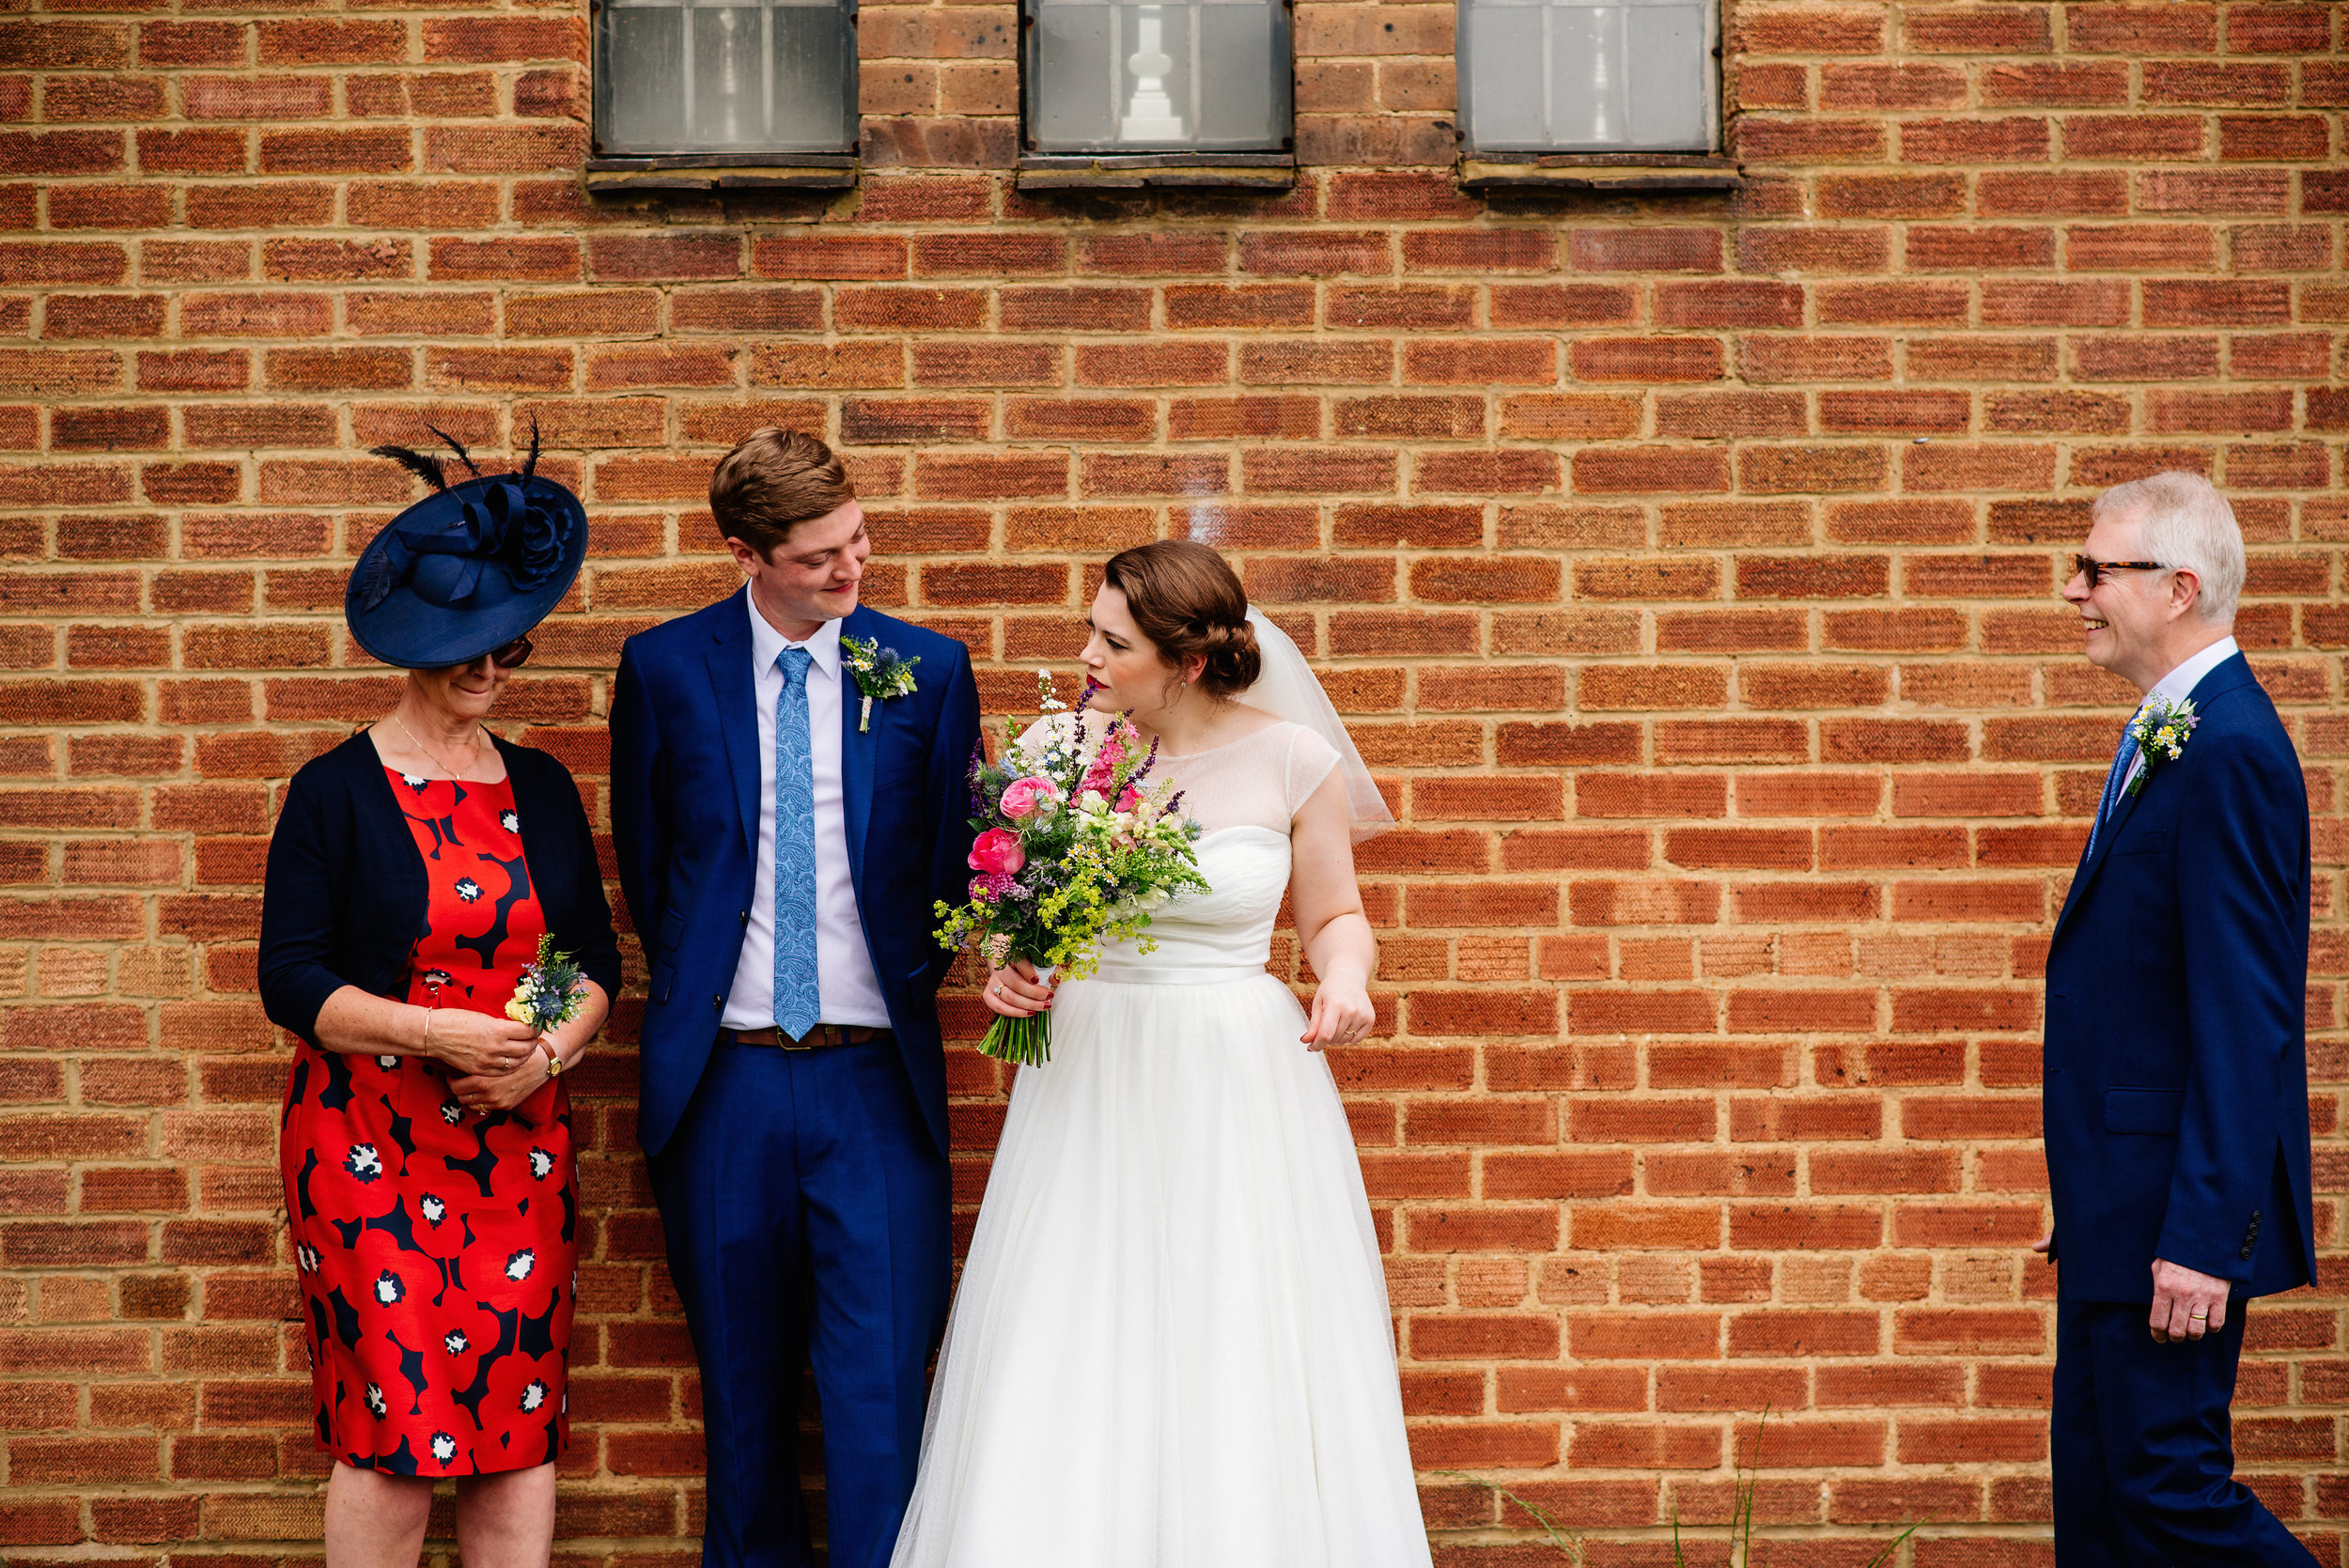 128 Emily + Daniel | Berkhamsted Towhall Wedding London Wedding Photographer Bride Groom Watford.jpg